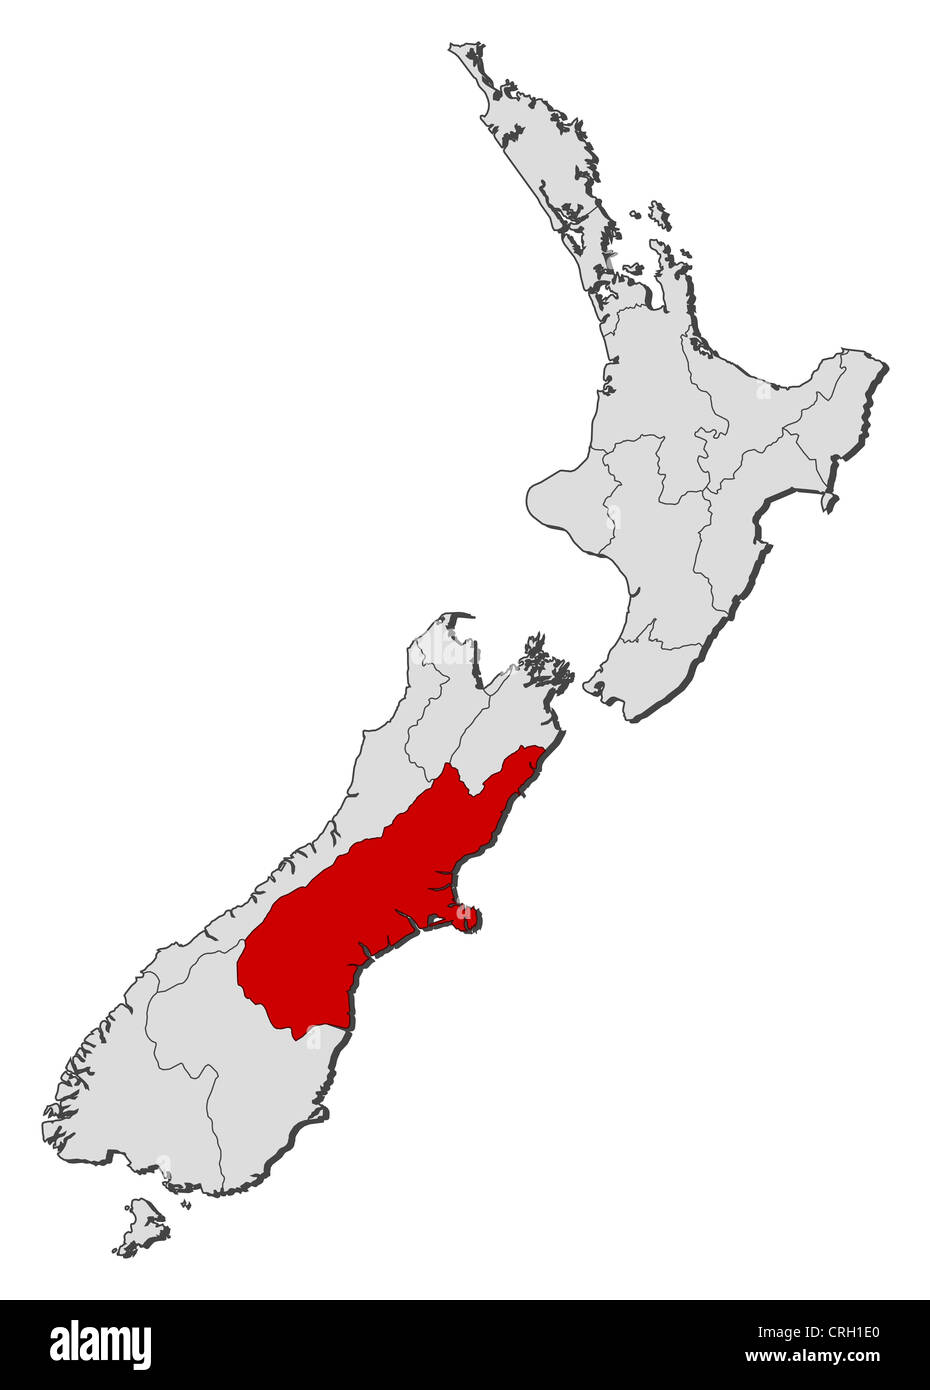 Political Map Of New Zealand.Political Map Of New Zealand With The Several Regions Where Stock